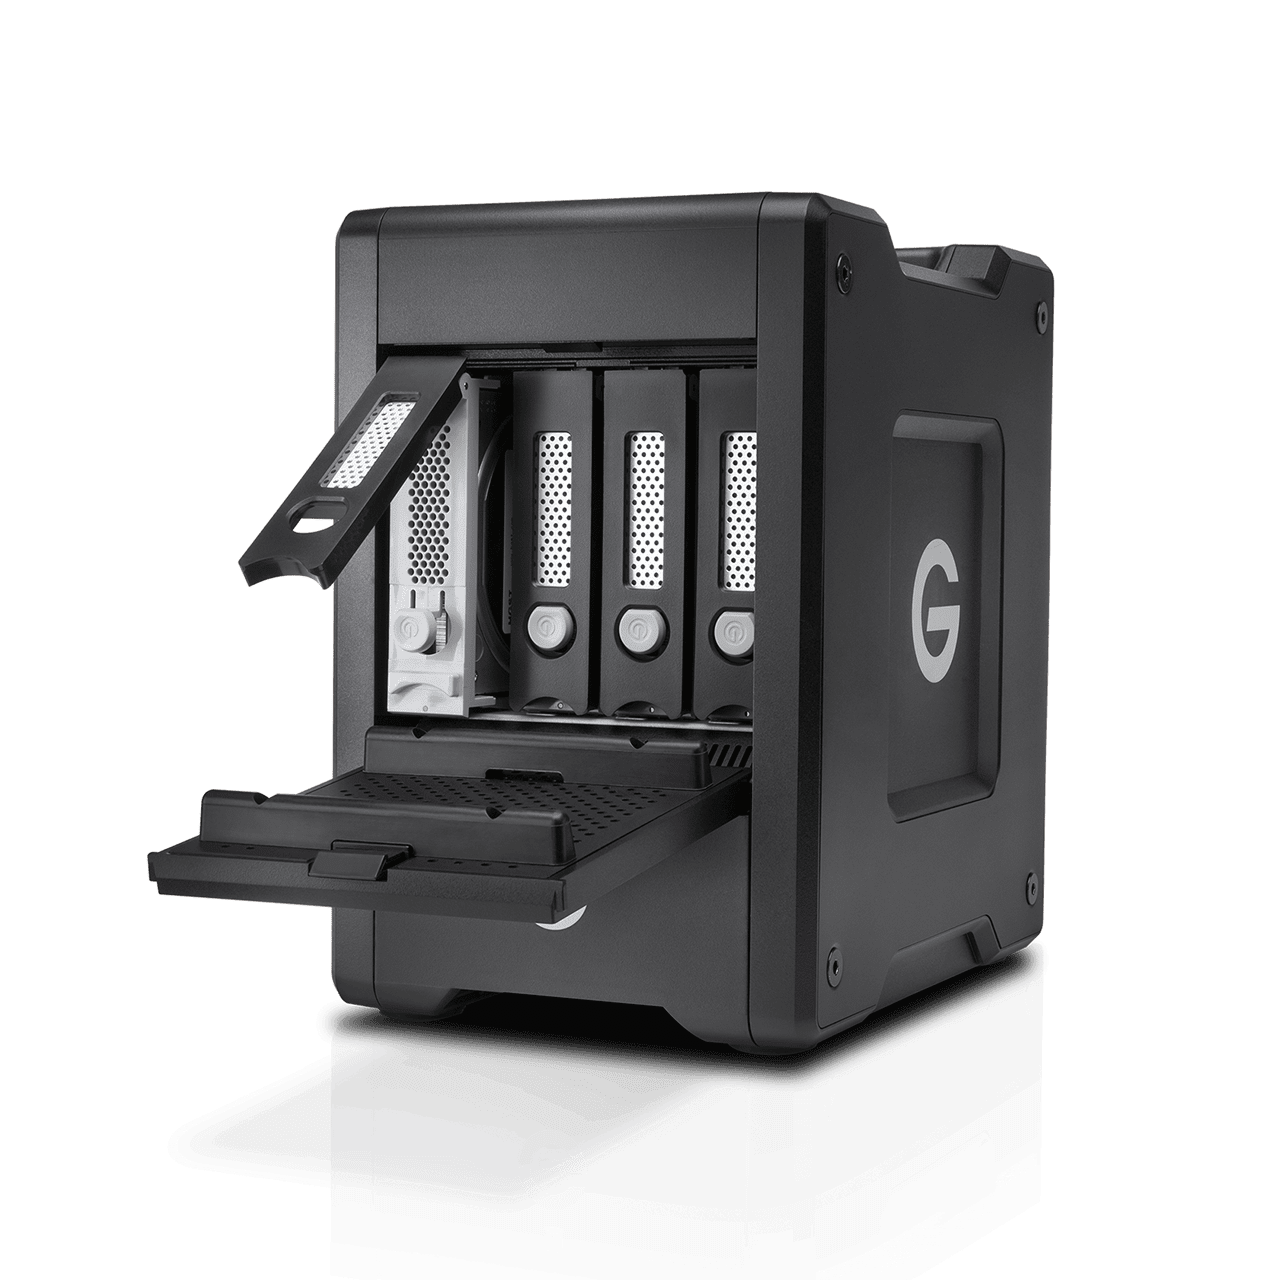 g-speed-shuttle-with-thunderbolt-3-heroopen-drivepulled-png-thumb-1280-1280